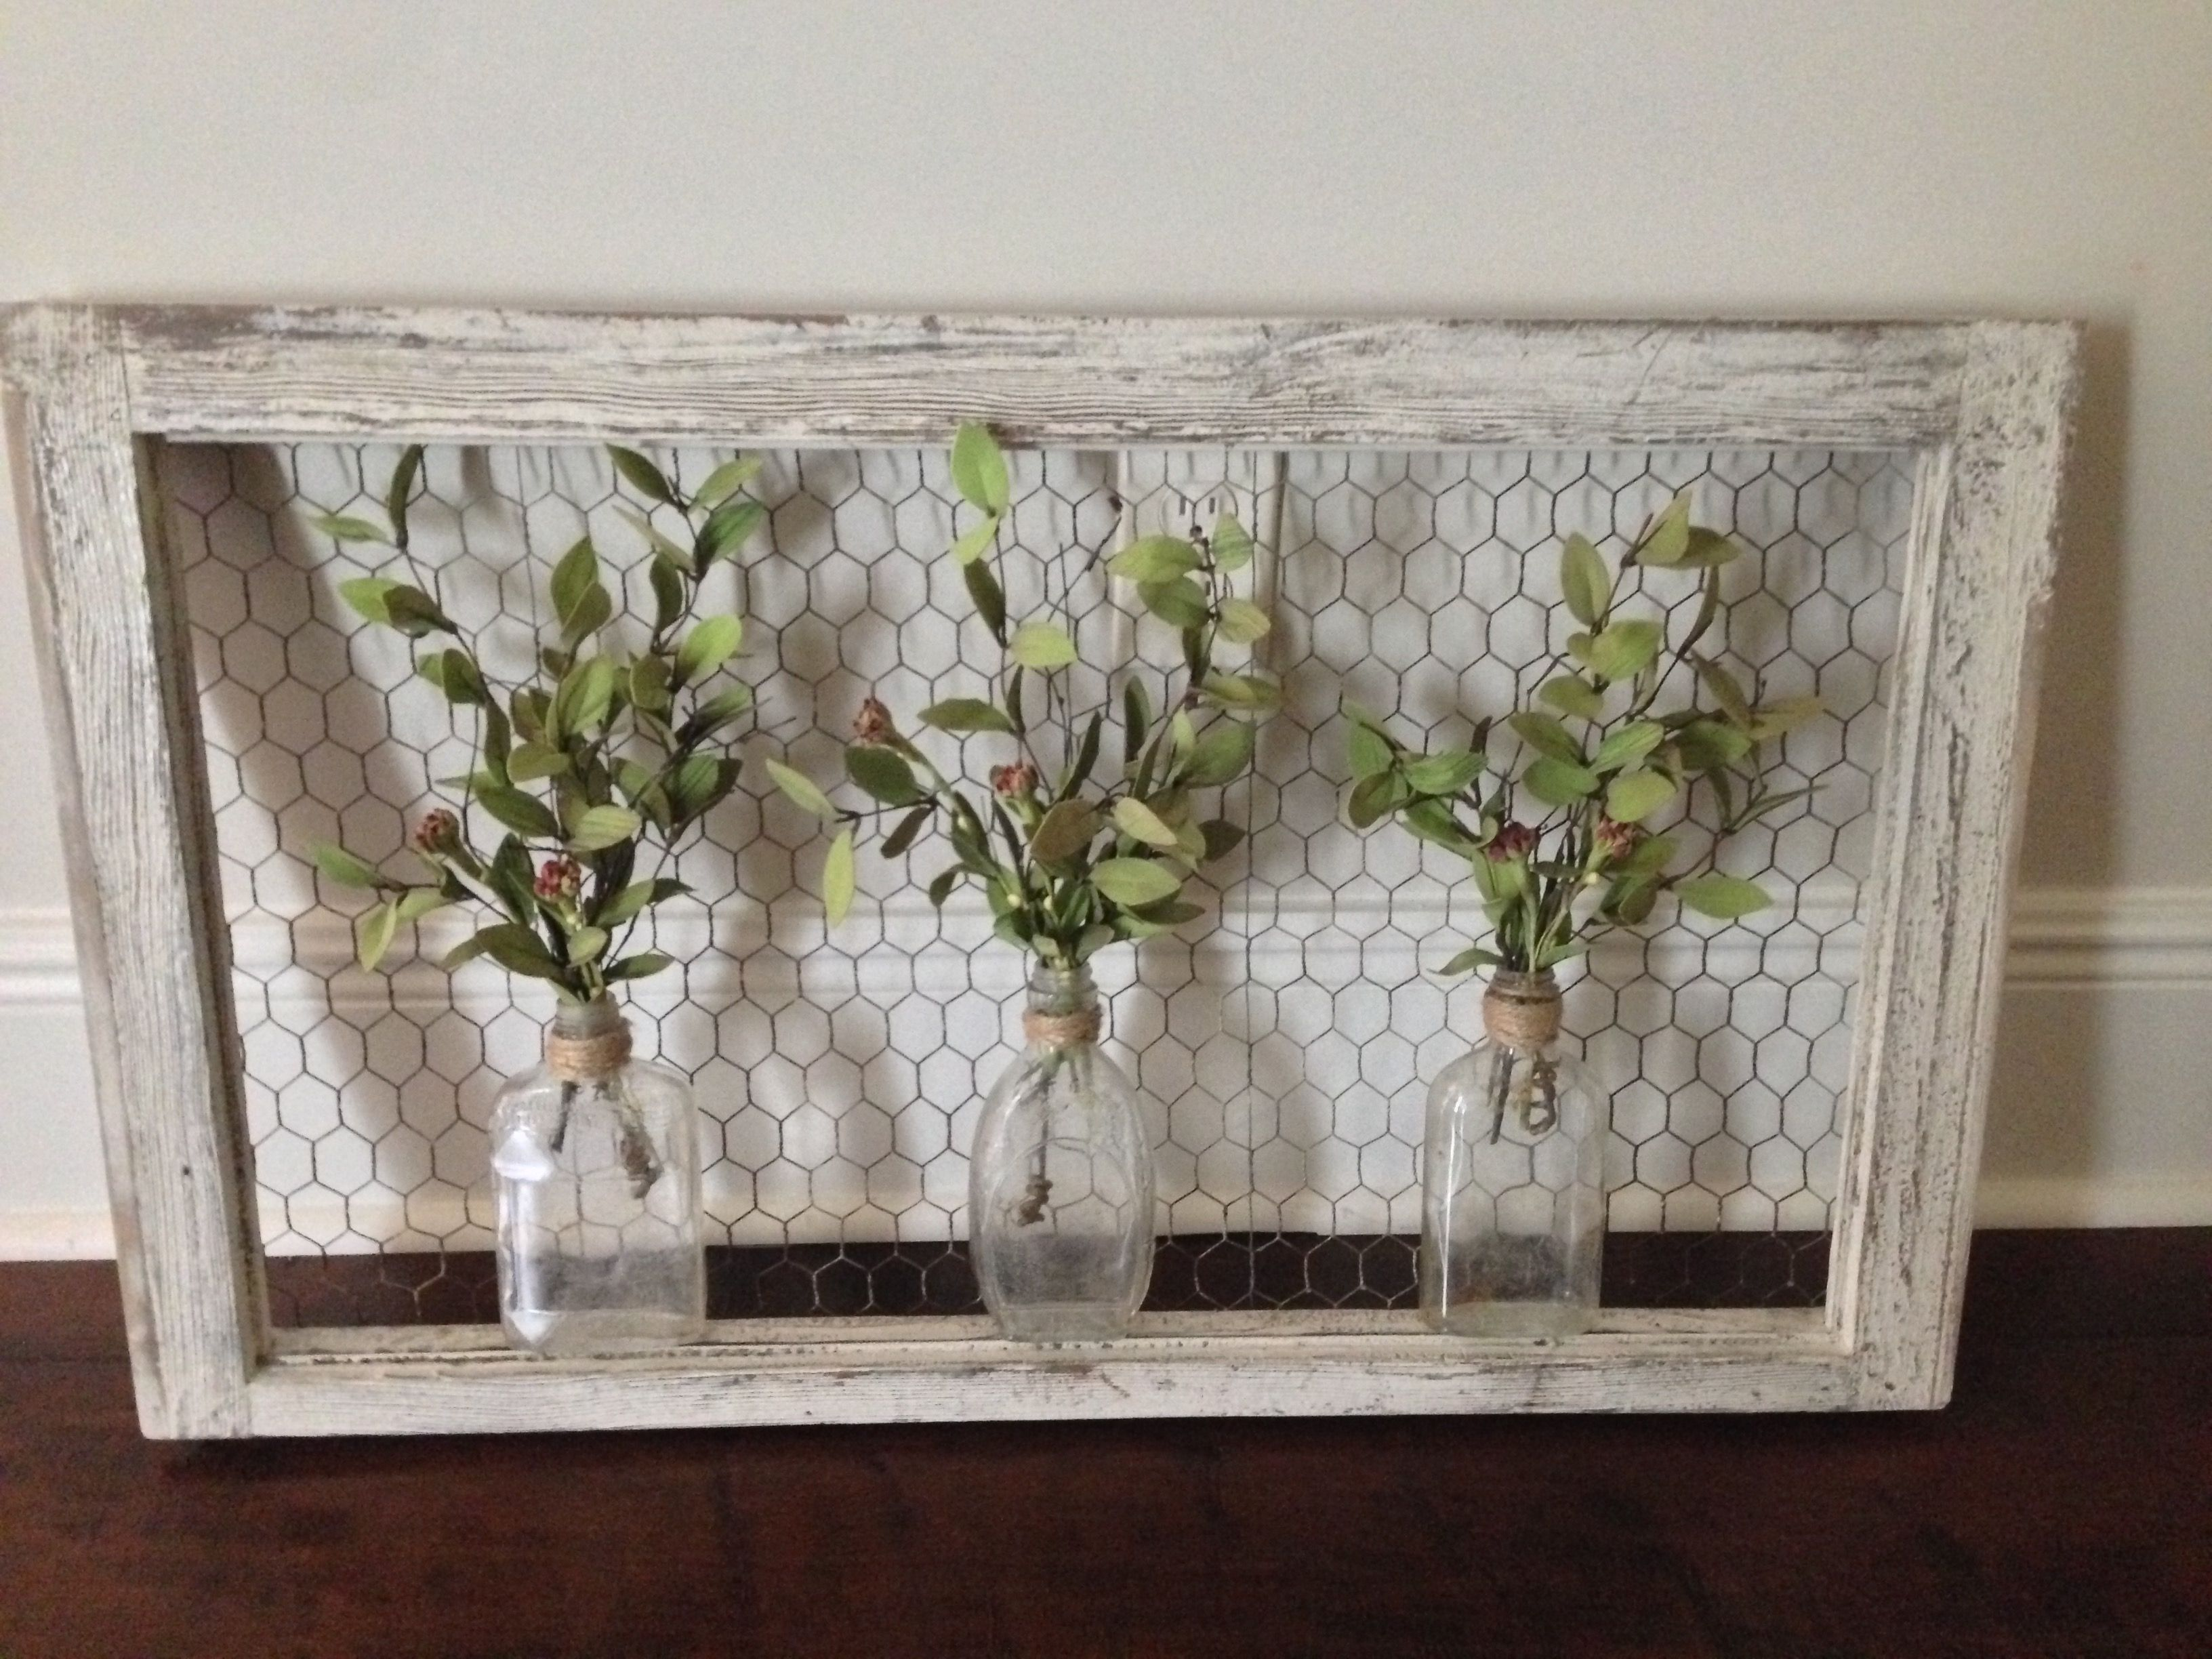 Wall art old window frame chicken wire bottles and greenery also rh pinterest